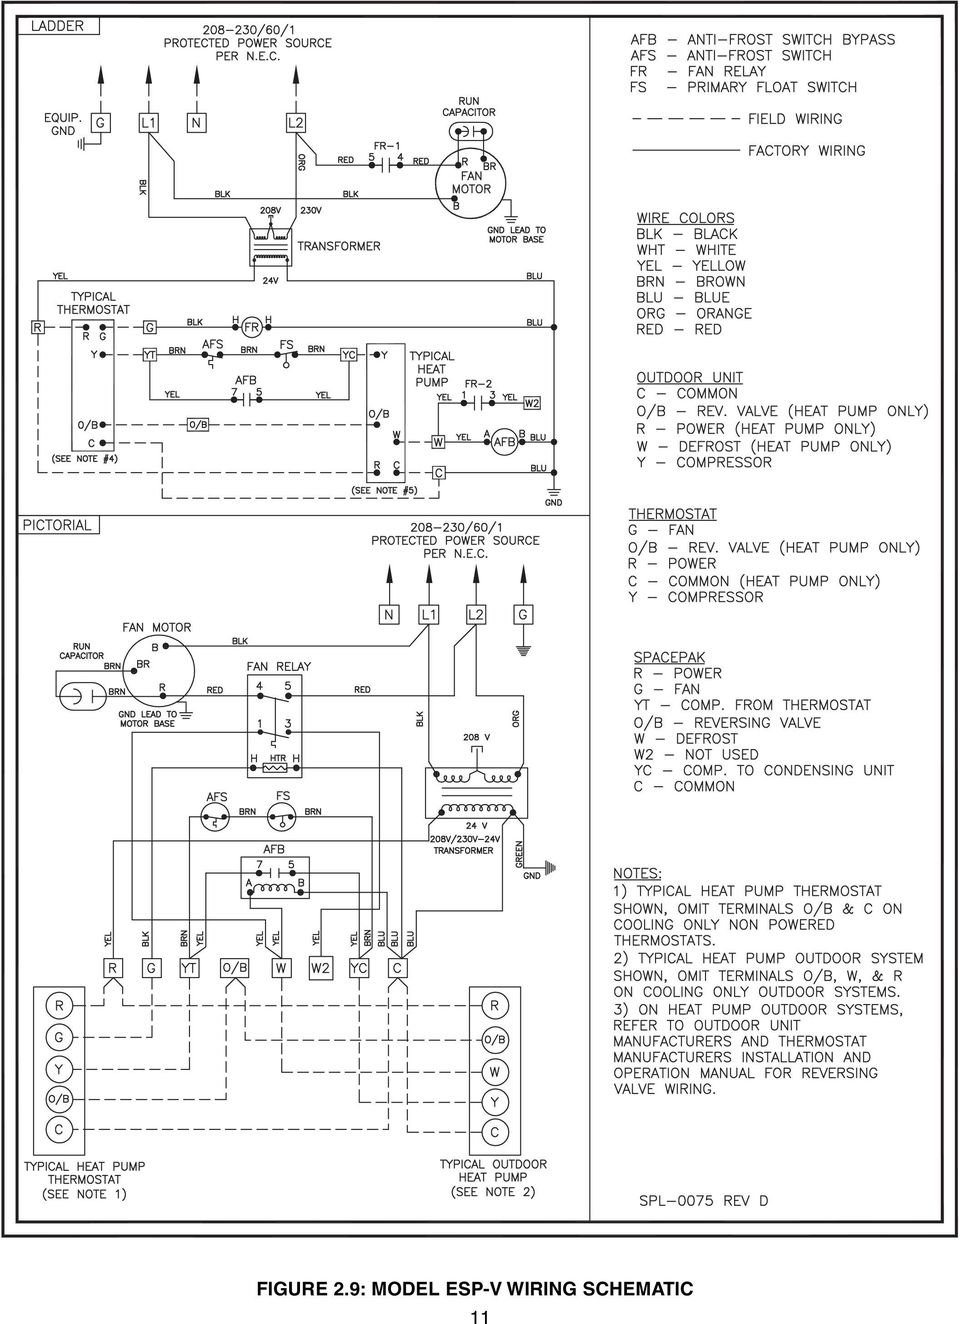 Model Esp V System Installation Operation Maintenance Manual Pdf Wiring Diagram 12 Step 8 Installing Air Distribution Components All Plenum Duct And Supply Tubing Runs As Well Room Terminator Locations Must Be In Accordance With